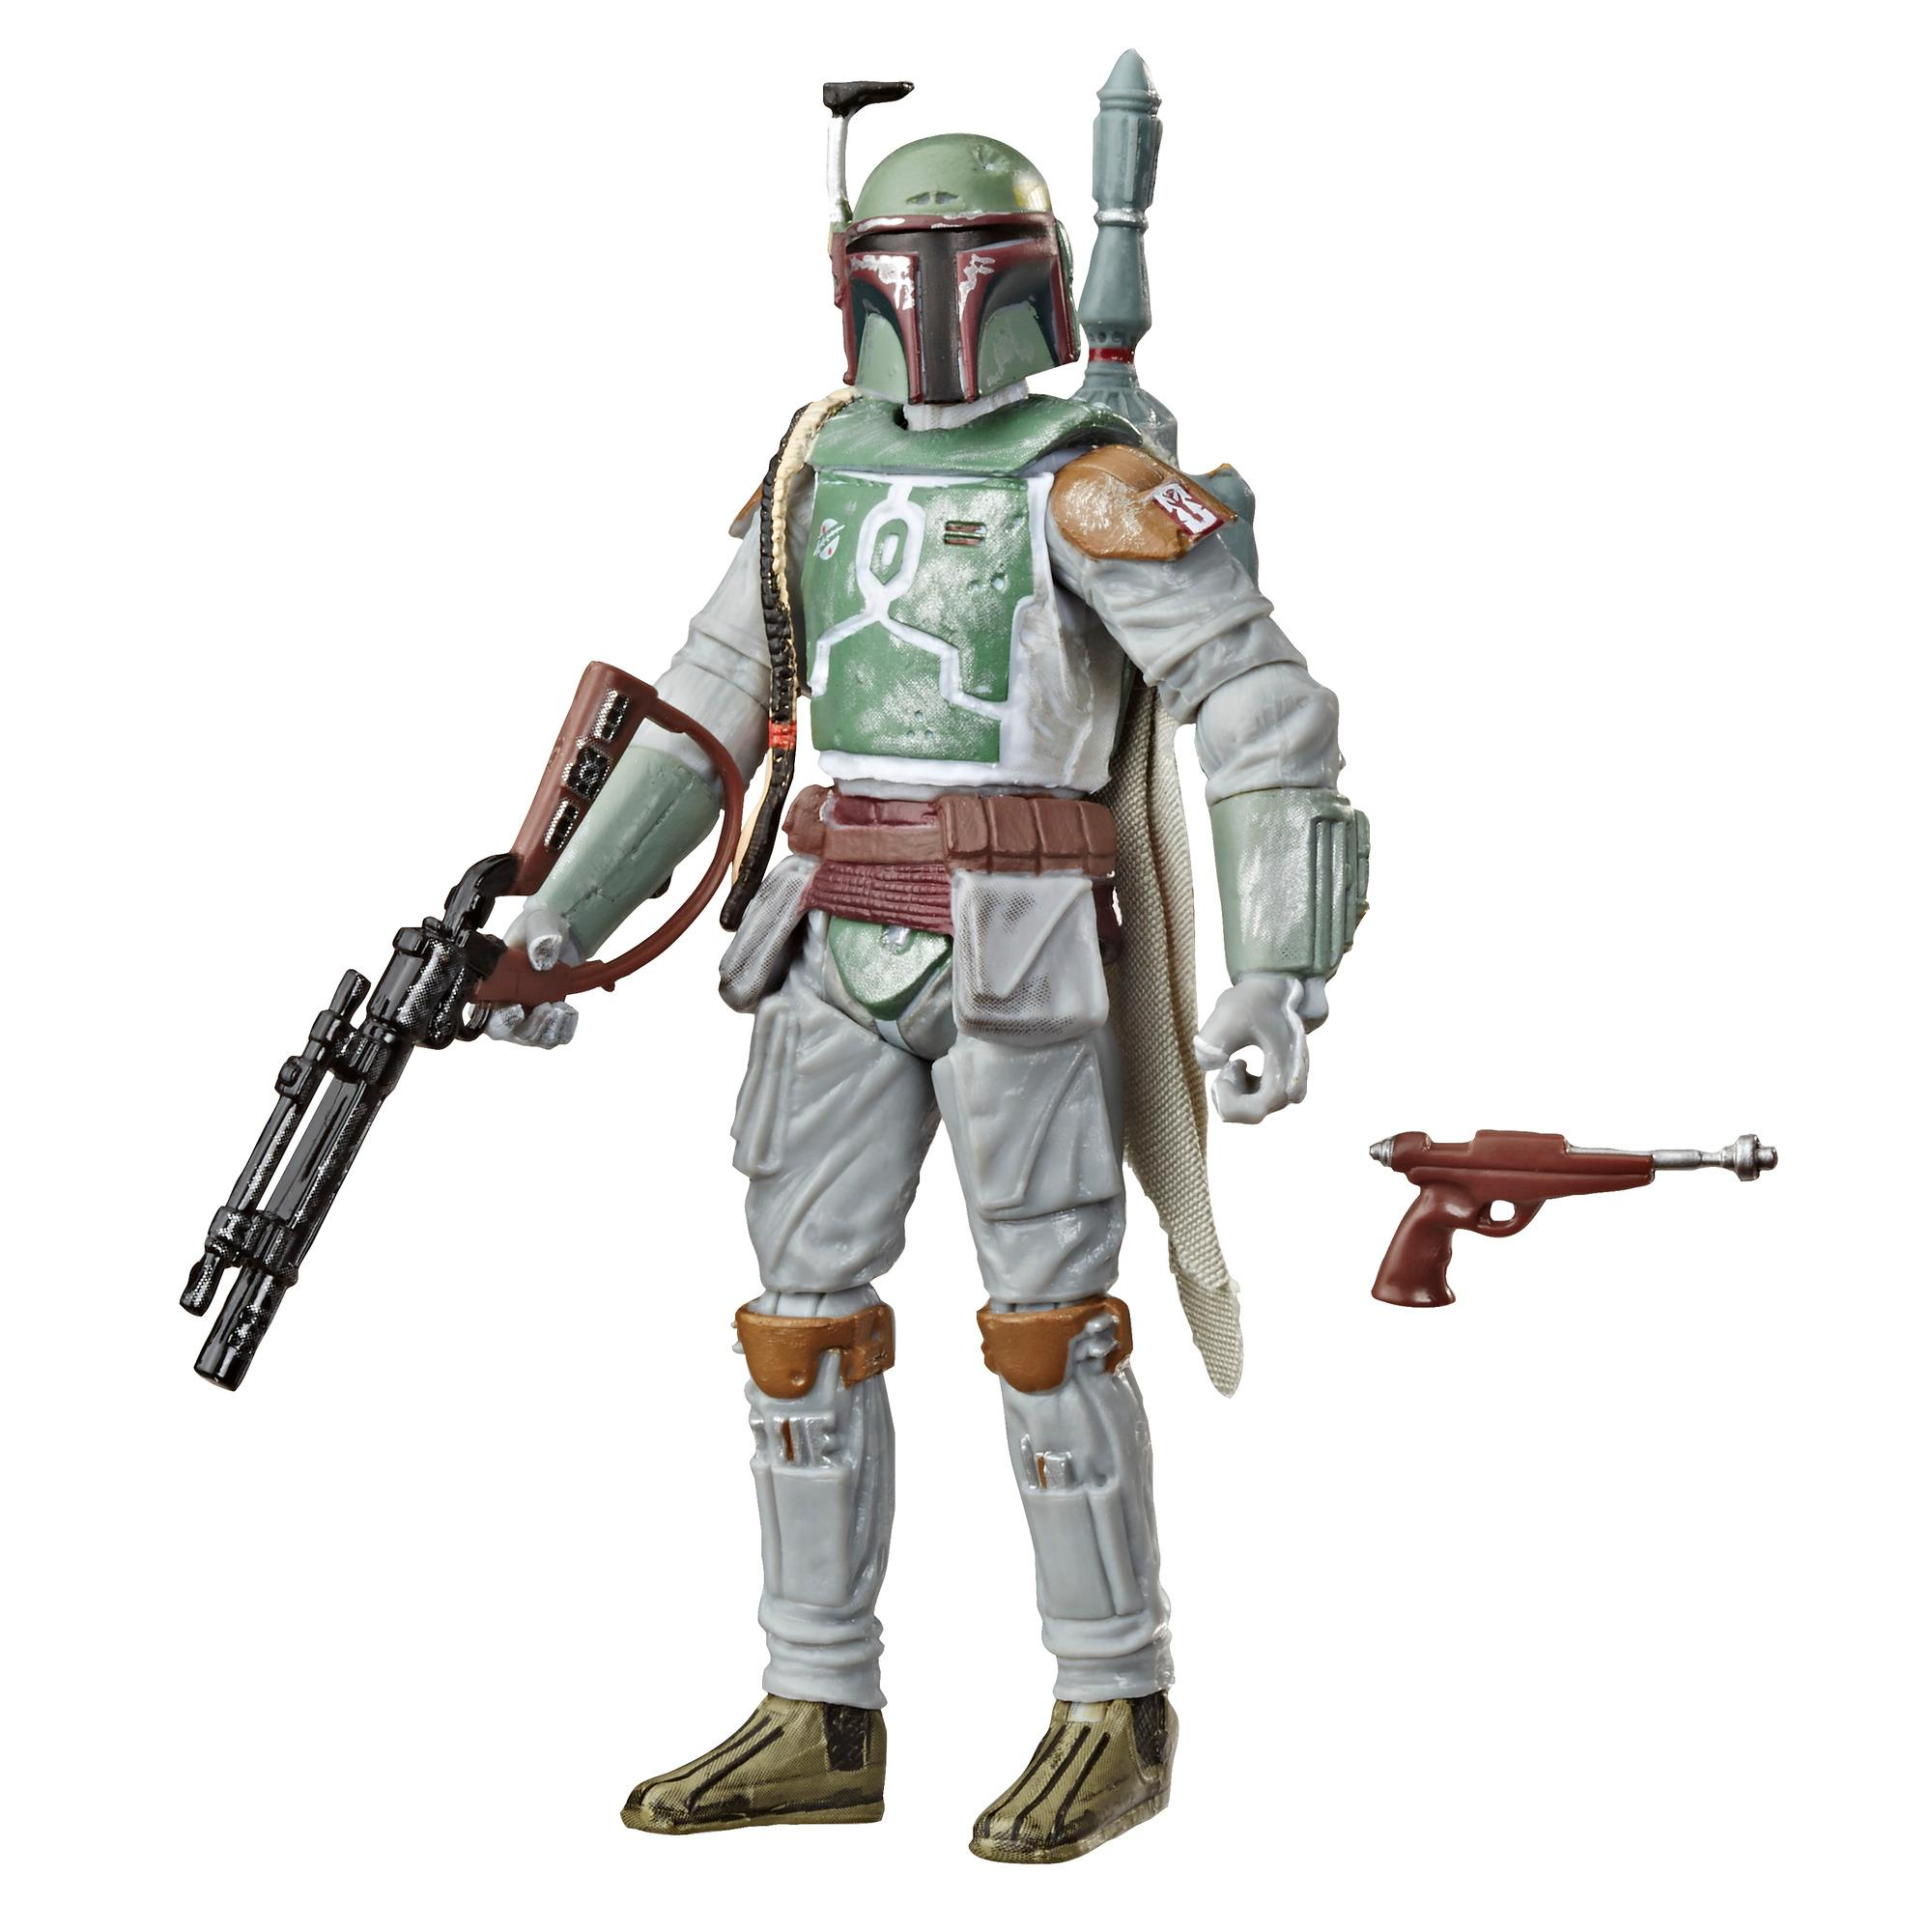 Star Wars The Vintage Collection Episode V: The Empire Strikes Back Boba Fett 3.75-Inch-Scale Action Figure